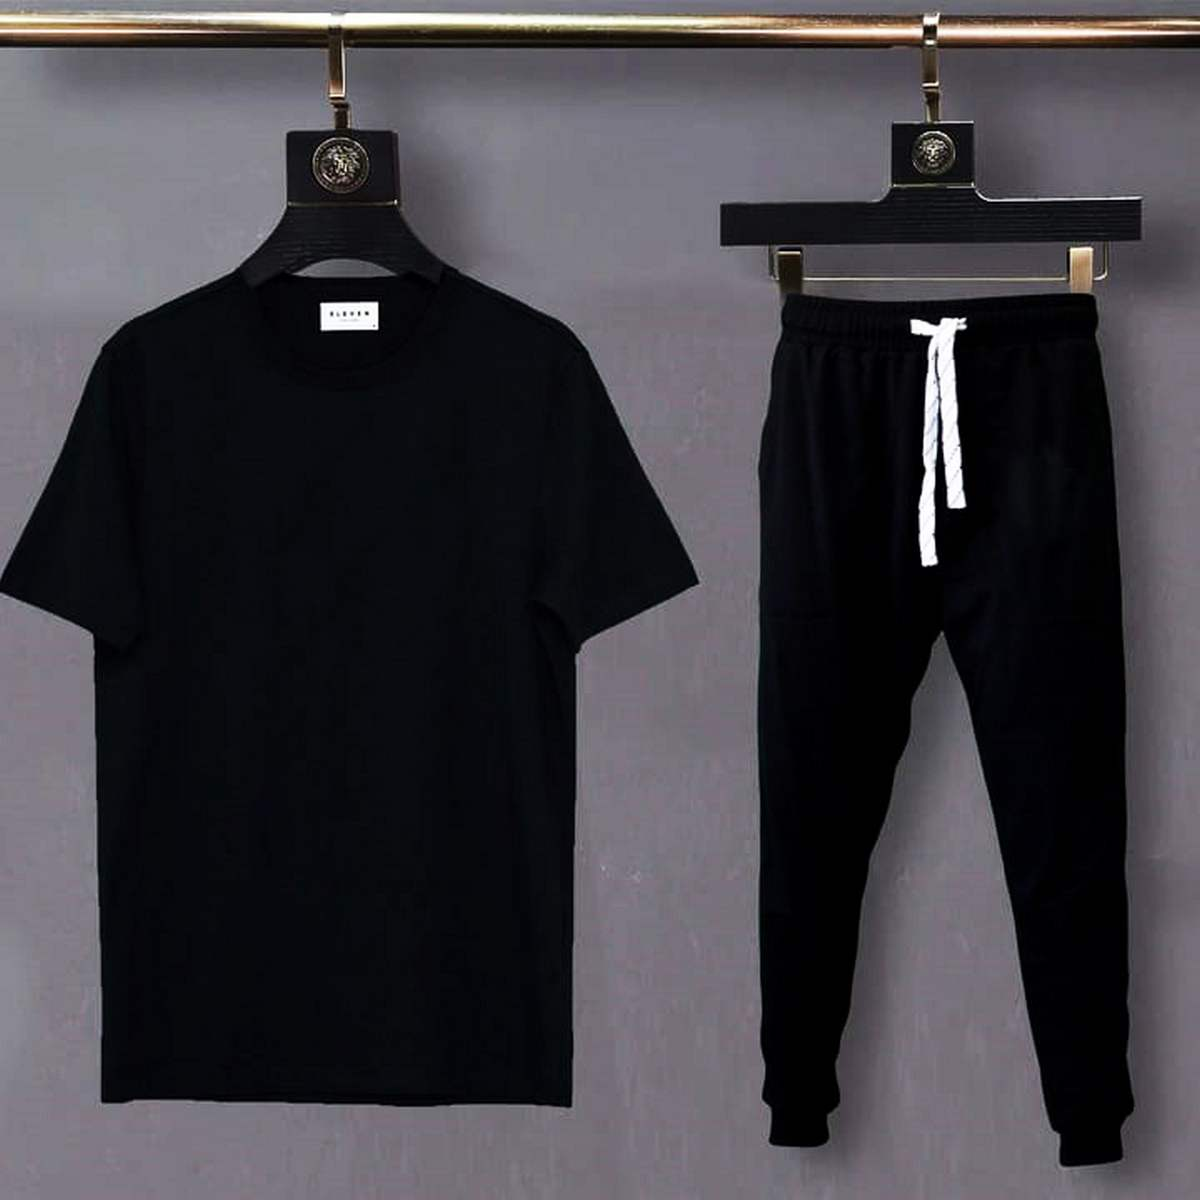 Plain Casual Cotton Round Neck Tees Half Sleeves Top Quality  Summer Collection T Shirt And Trouser For Men - Shez Fashion